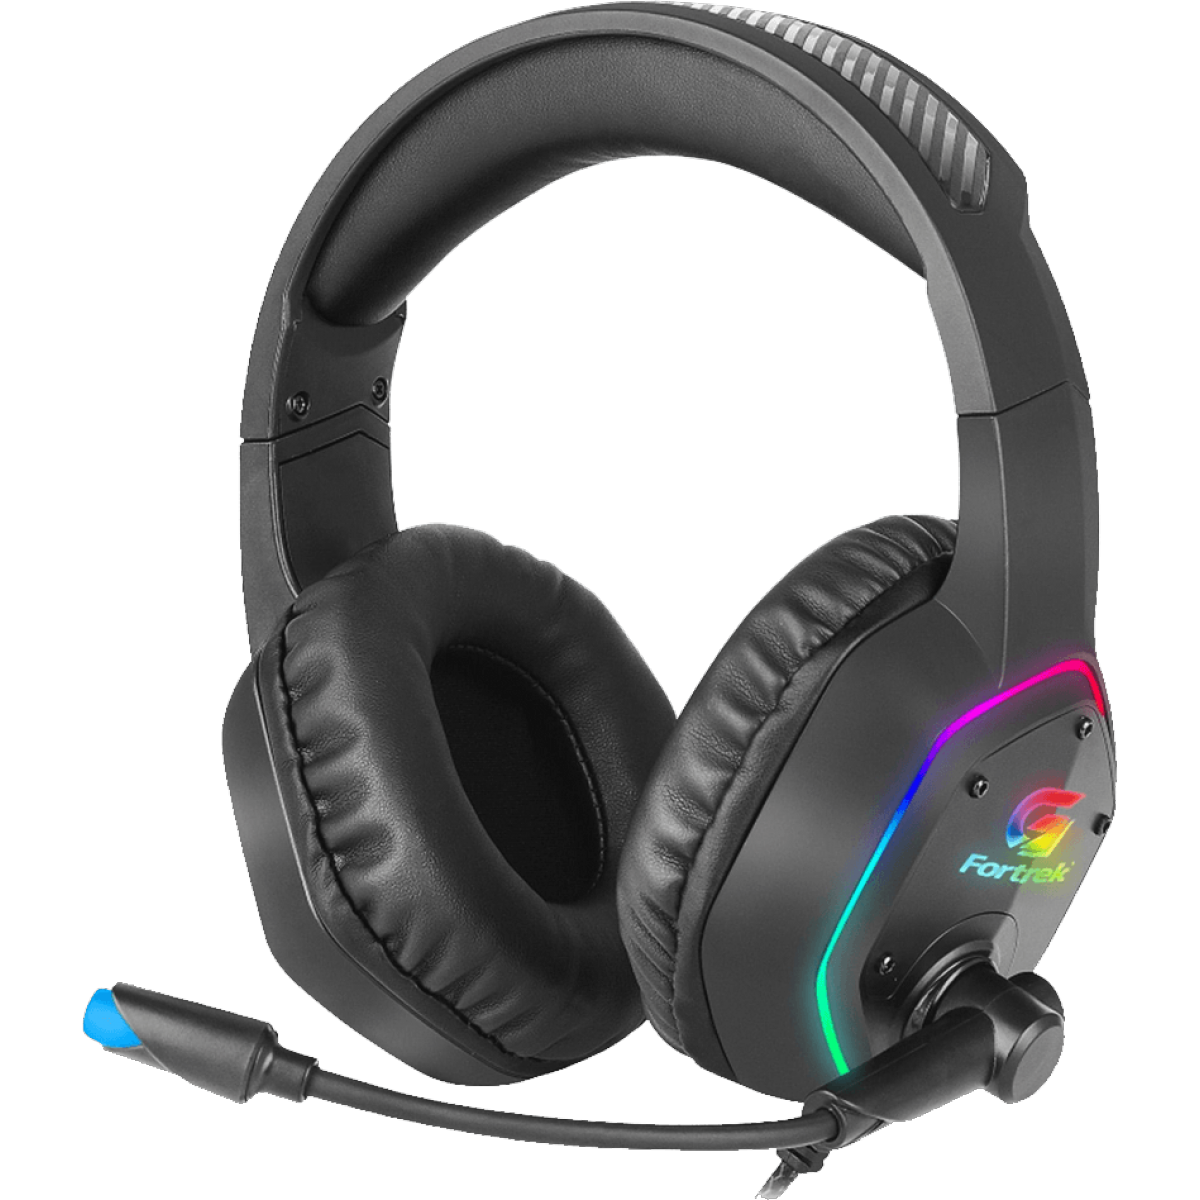 Headset Gamer Fortrek Blackfire, RGB, USB, Preto, 70554